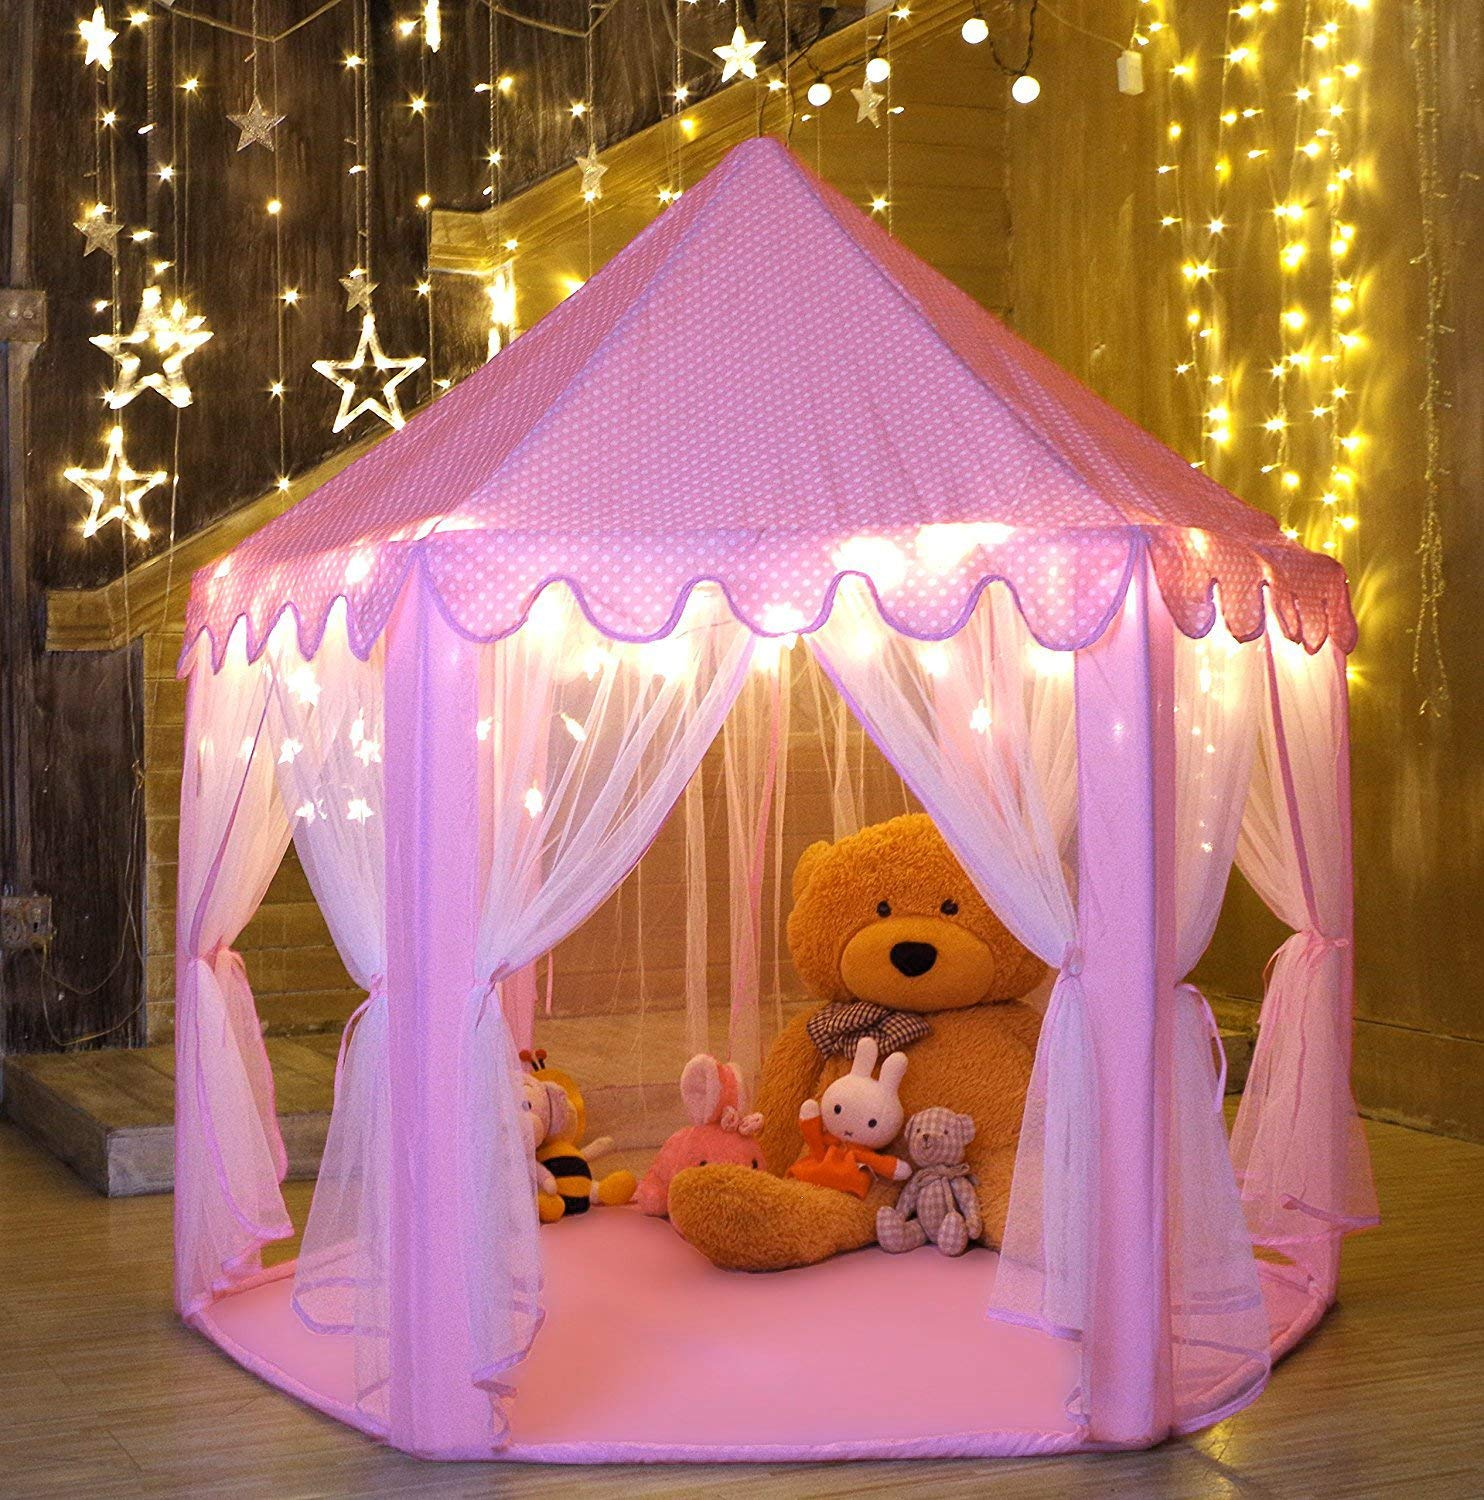 higoodz princess castle play tent kids girls play tent house portable children outdoor indoor pink princess tent girls large playhouse birthday gift